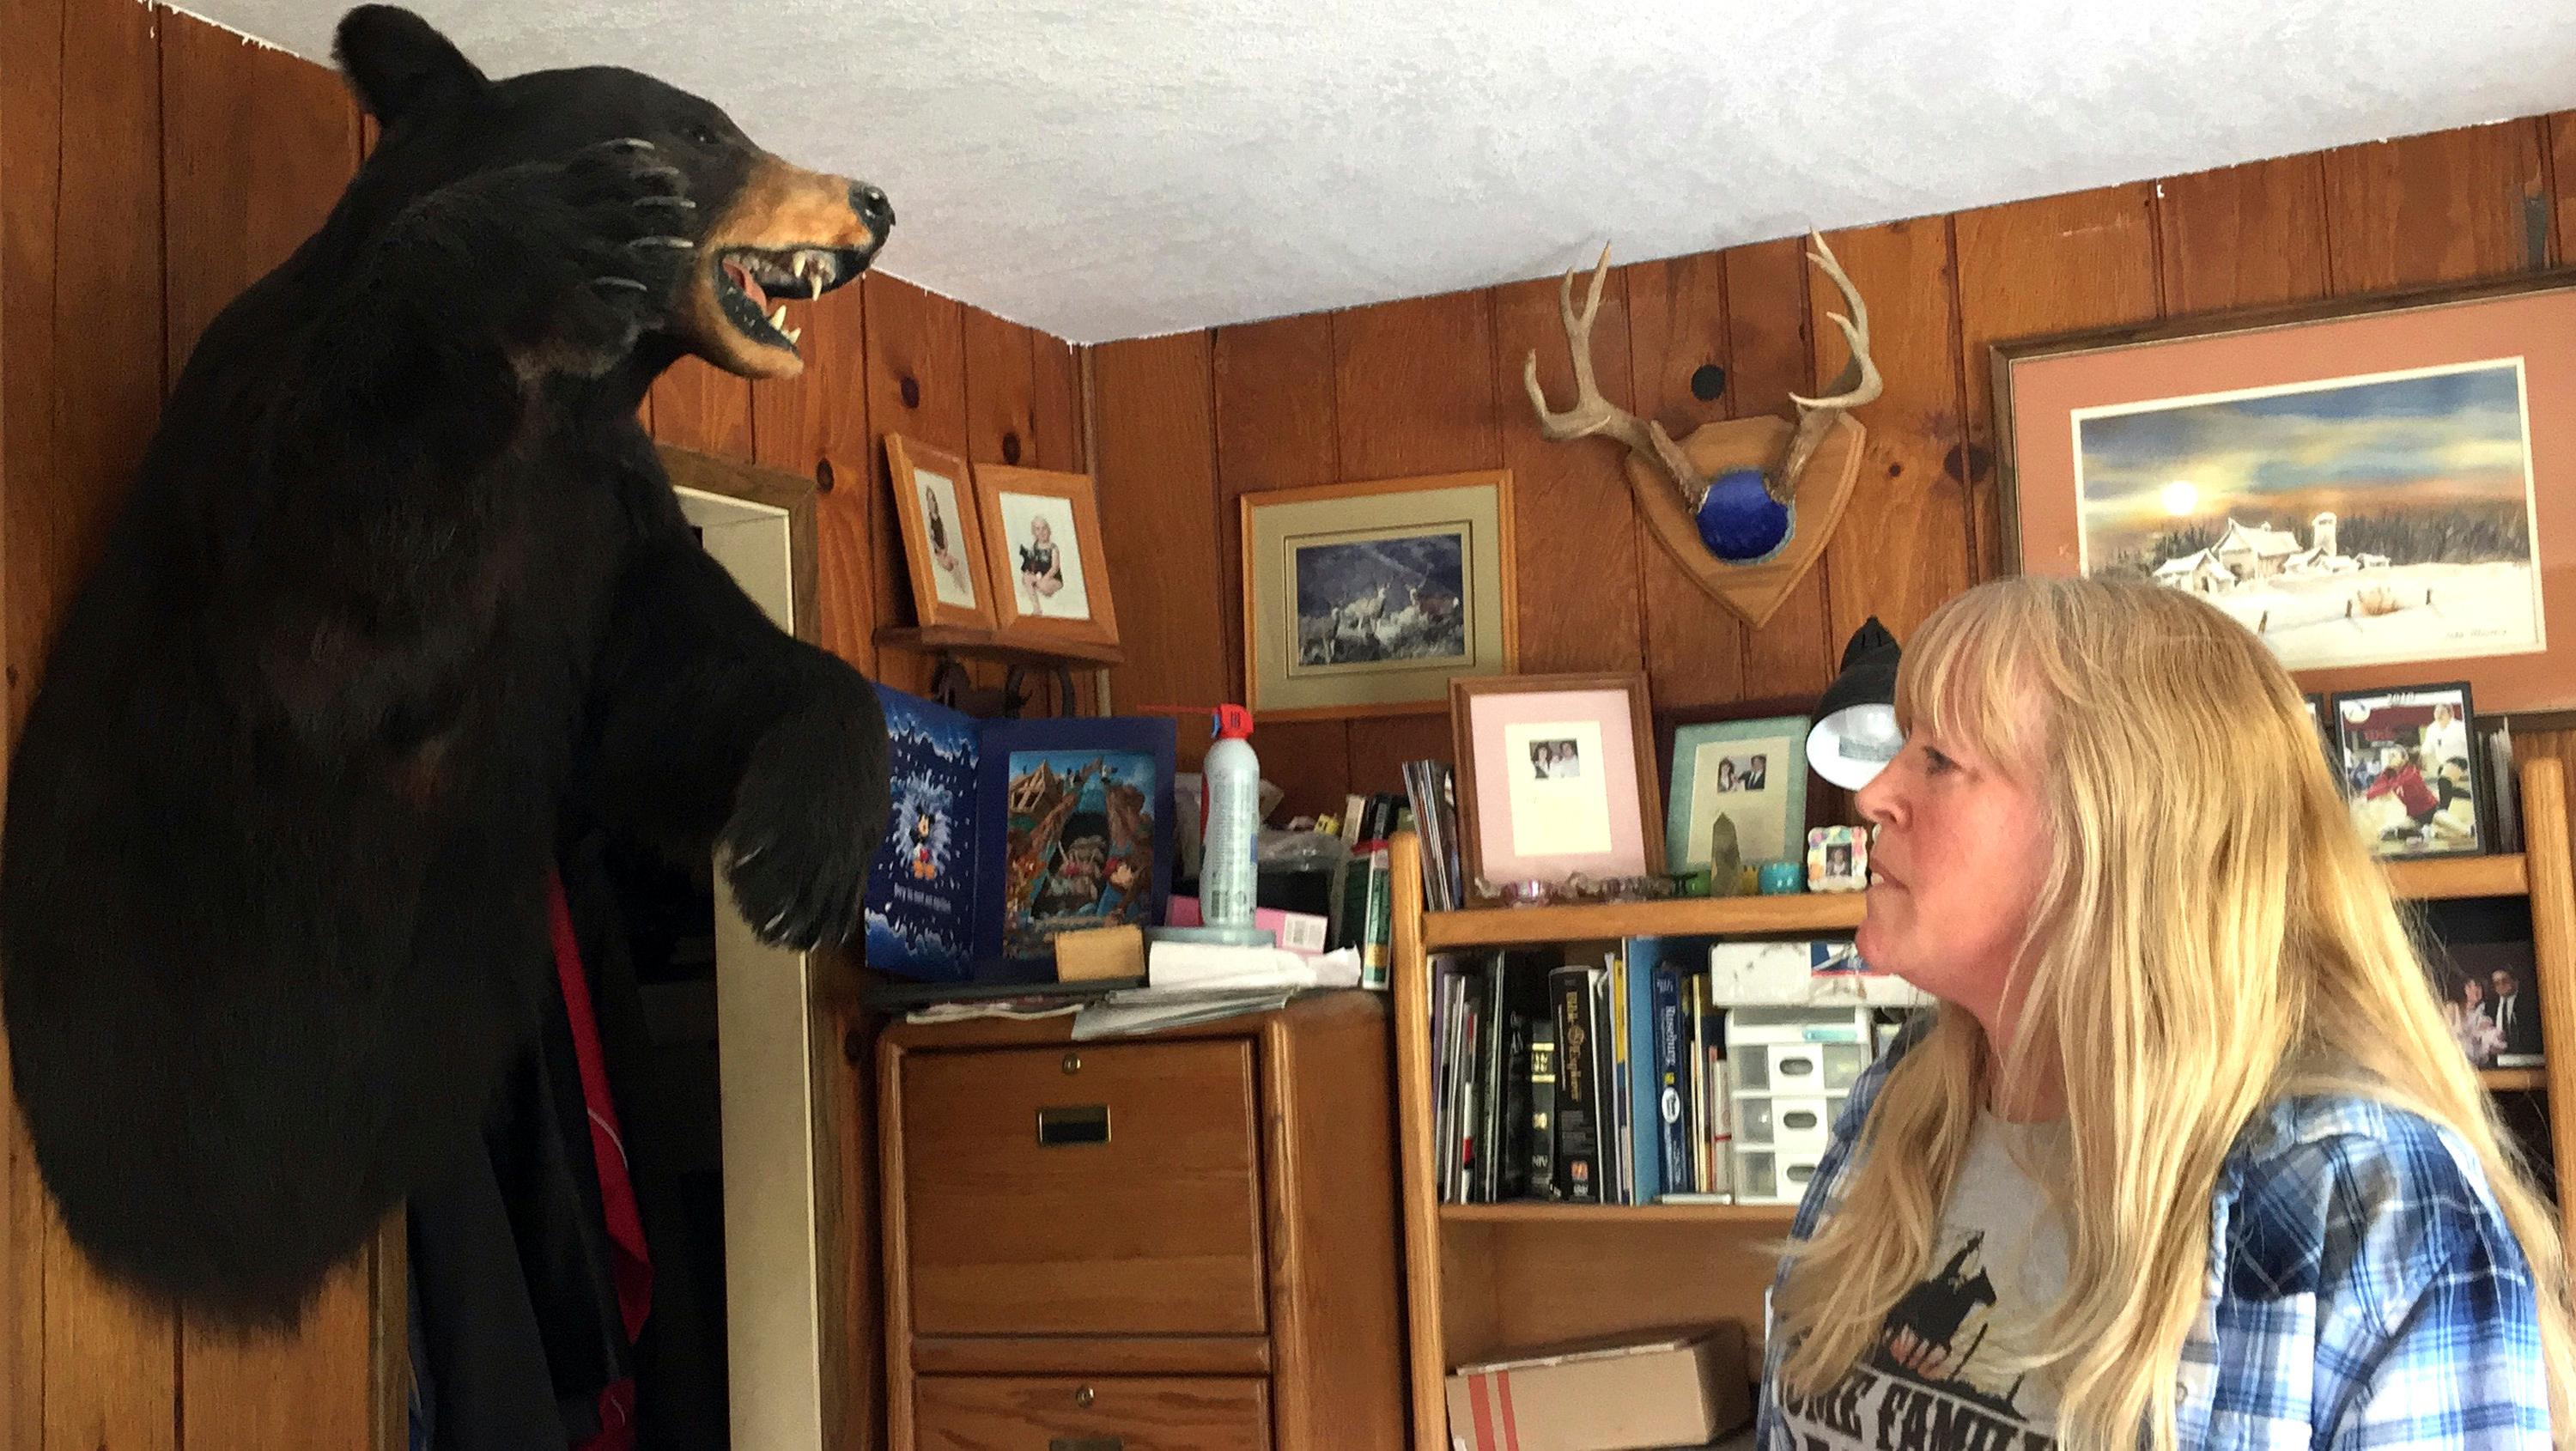 In this April 5, 2017 photo, longtime Tiller resident Paula Ellis shows off a bear head hanging on the wall in her home in Tiller, Ore. Ellis spent her childhood in Tiller hunting and riding horses and now worries about what will happen to the tiny, dying timber town. Tiller, a dot on a map in remote southwestern Oregon, is for sale for $3.5 million and the elementary school is for sale separately for $350,000.  (AP Photo/Gillian Flaccus)